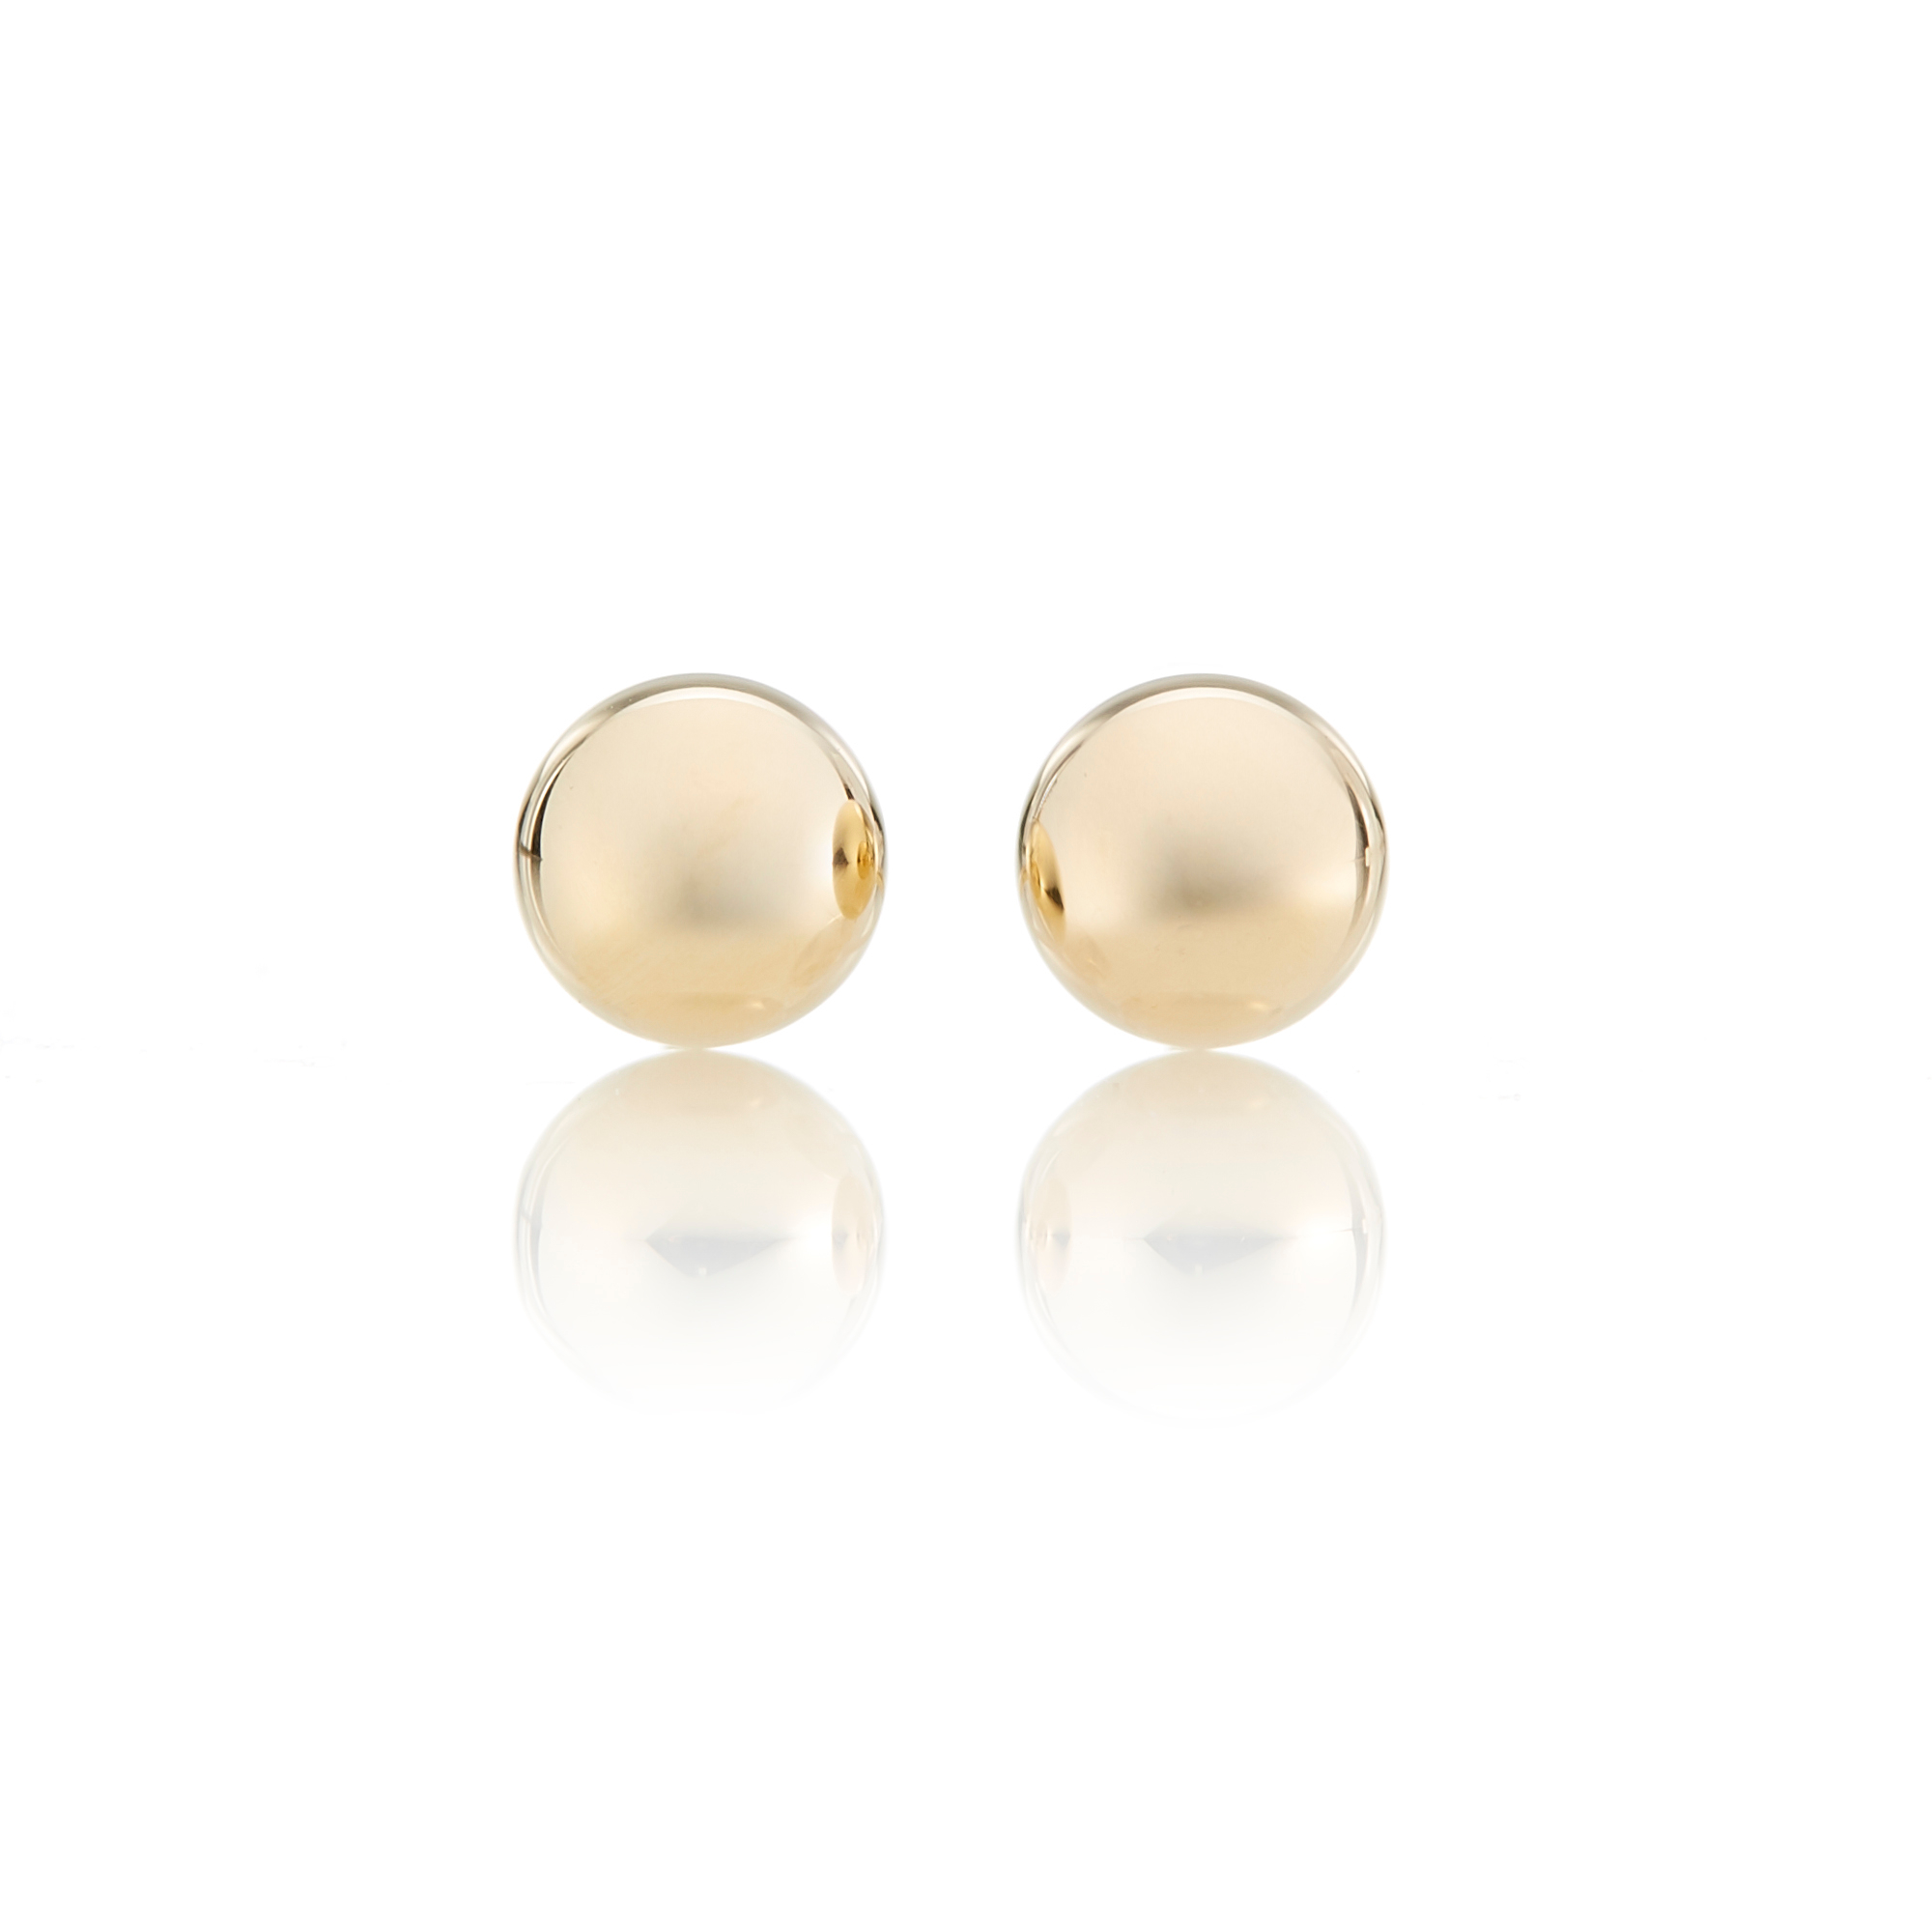 Polished Petite Ball Earrings